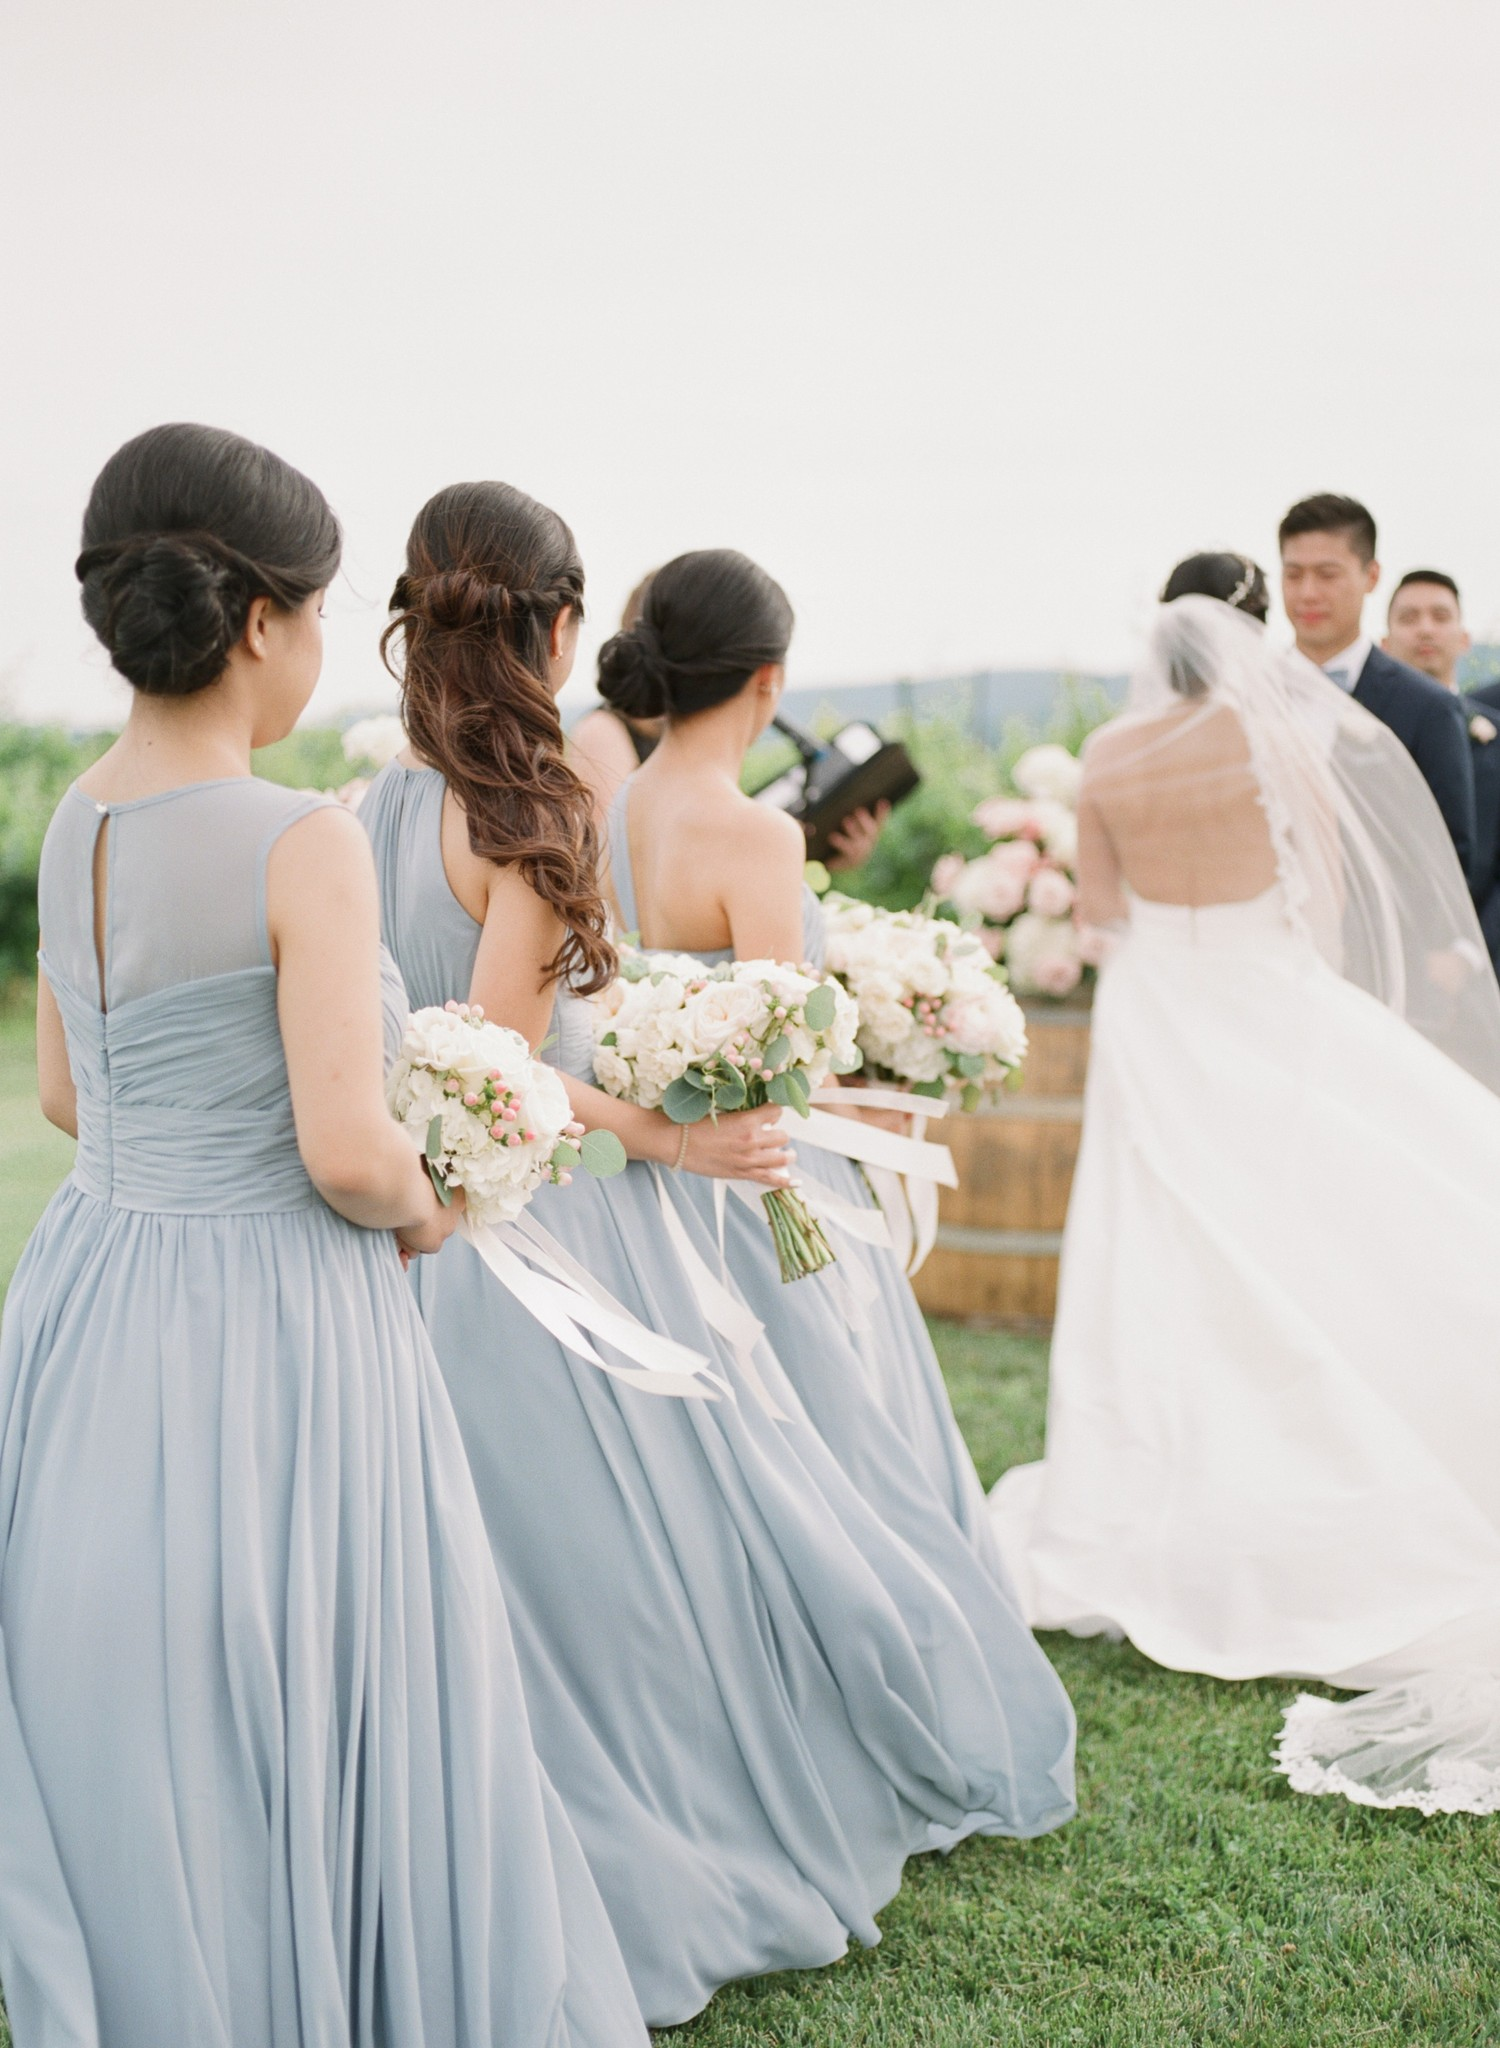 VA-Breaux-Vineyards-Summer-Wedding-Dusty-Blue-52.jpg